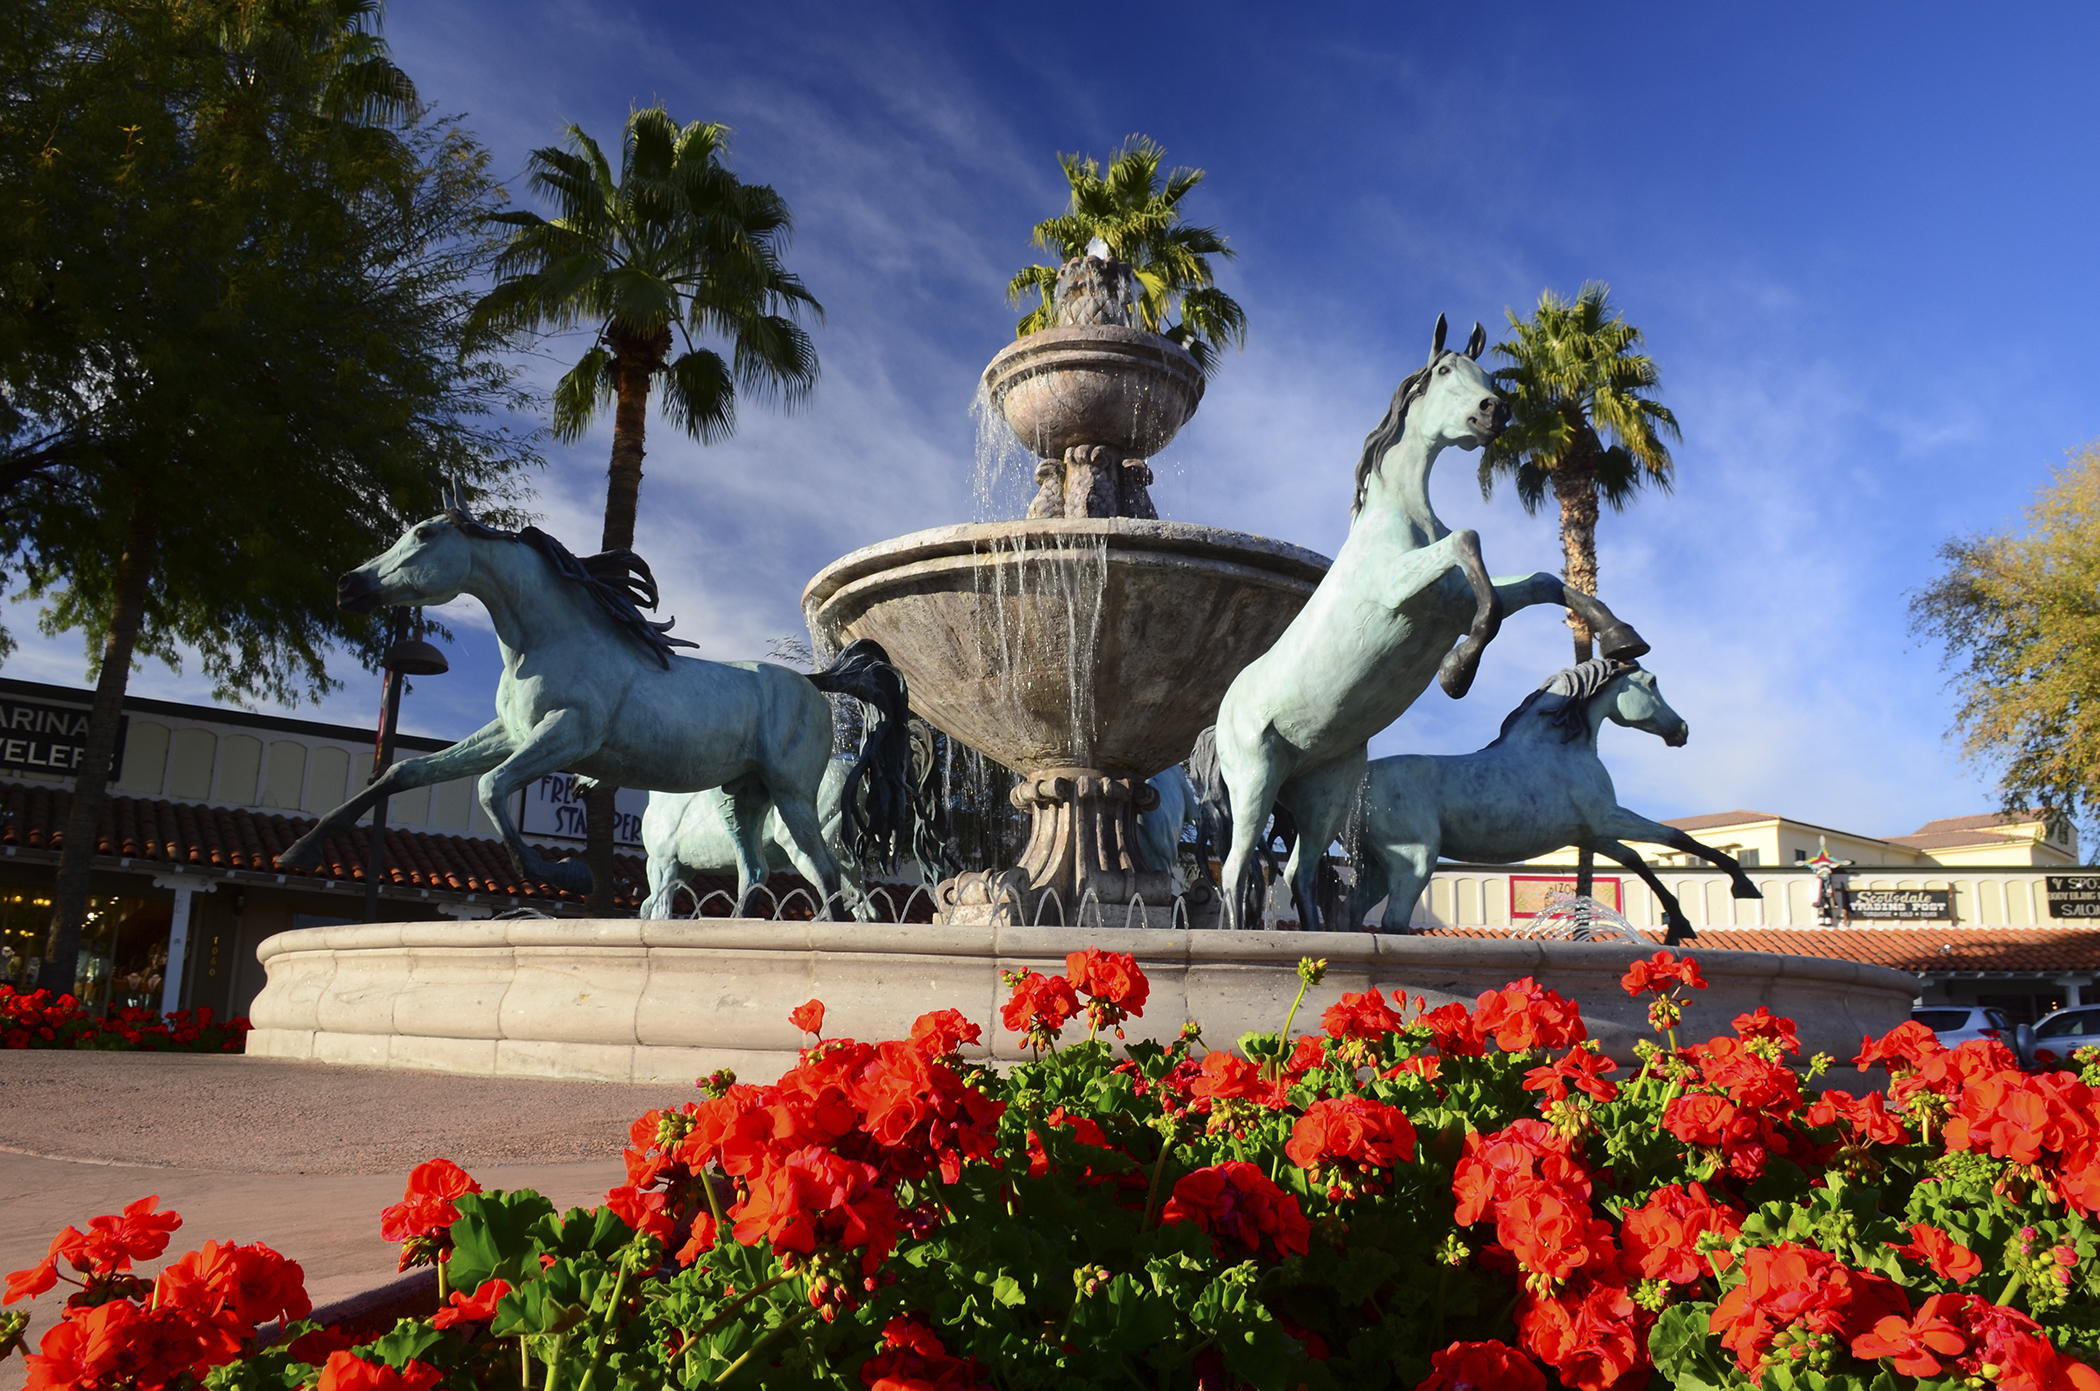 Scottsdale, Arizona. Before you move here, be sure you love golf, spas, and a hot, sunny desert climate. These days, high-end restaurants, bars, galleries and shops are also plentiful around town.